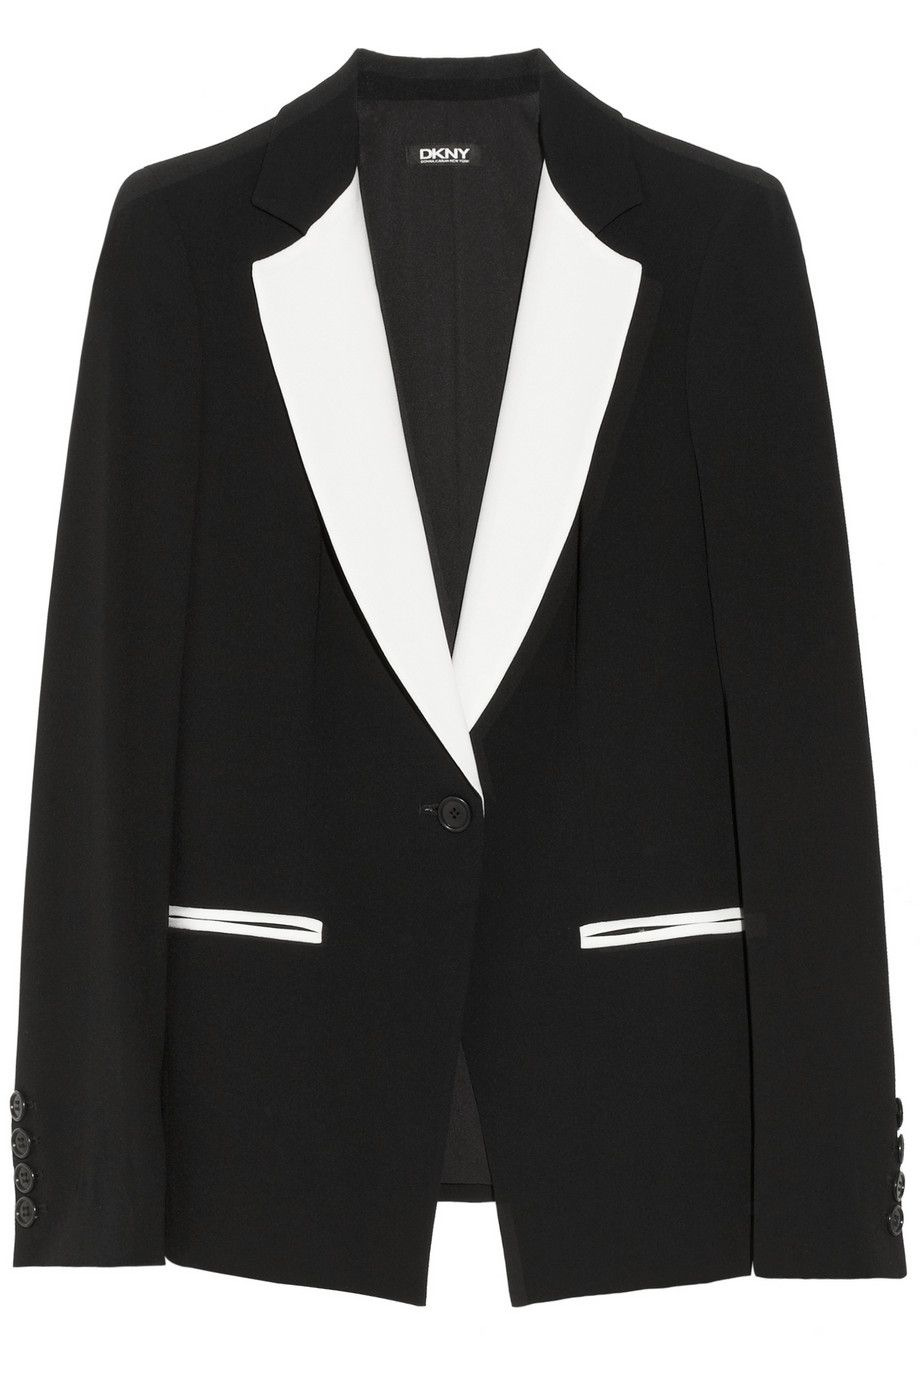 DKNY | Two-tone crepe blazer in black and white | NET-A-